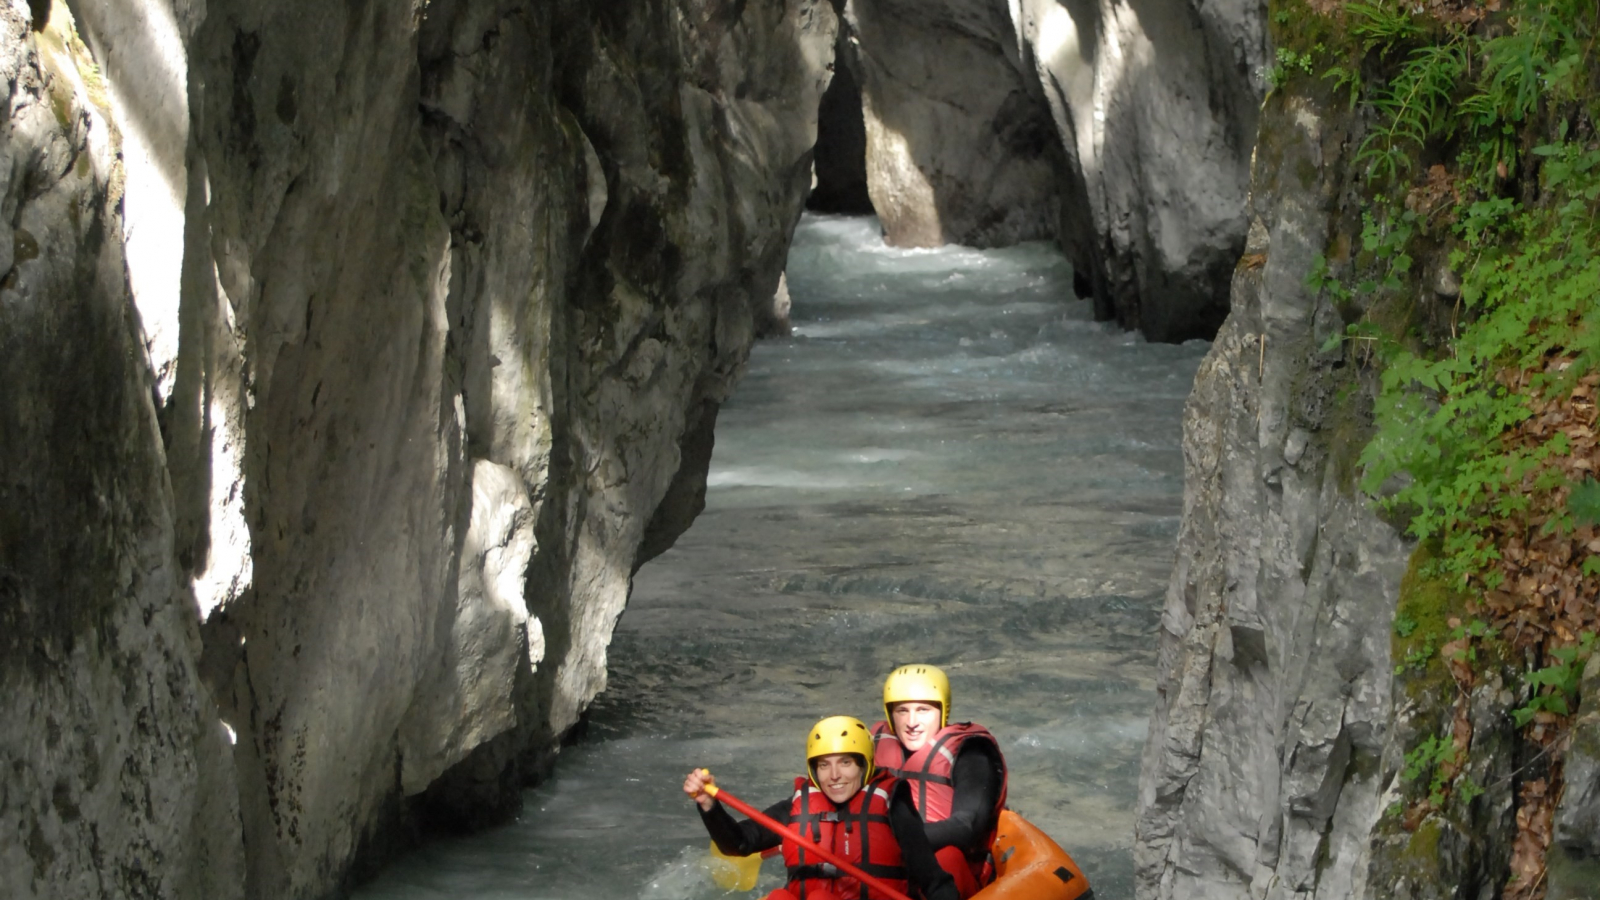 Cano Gorges des Tines